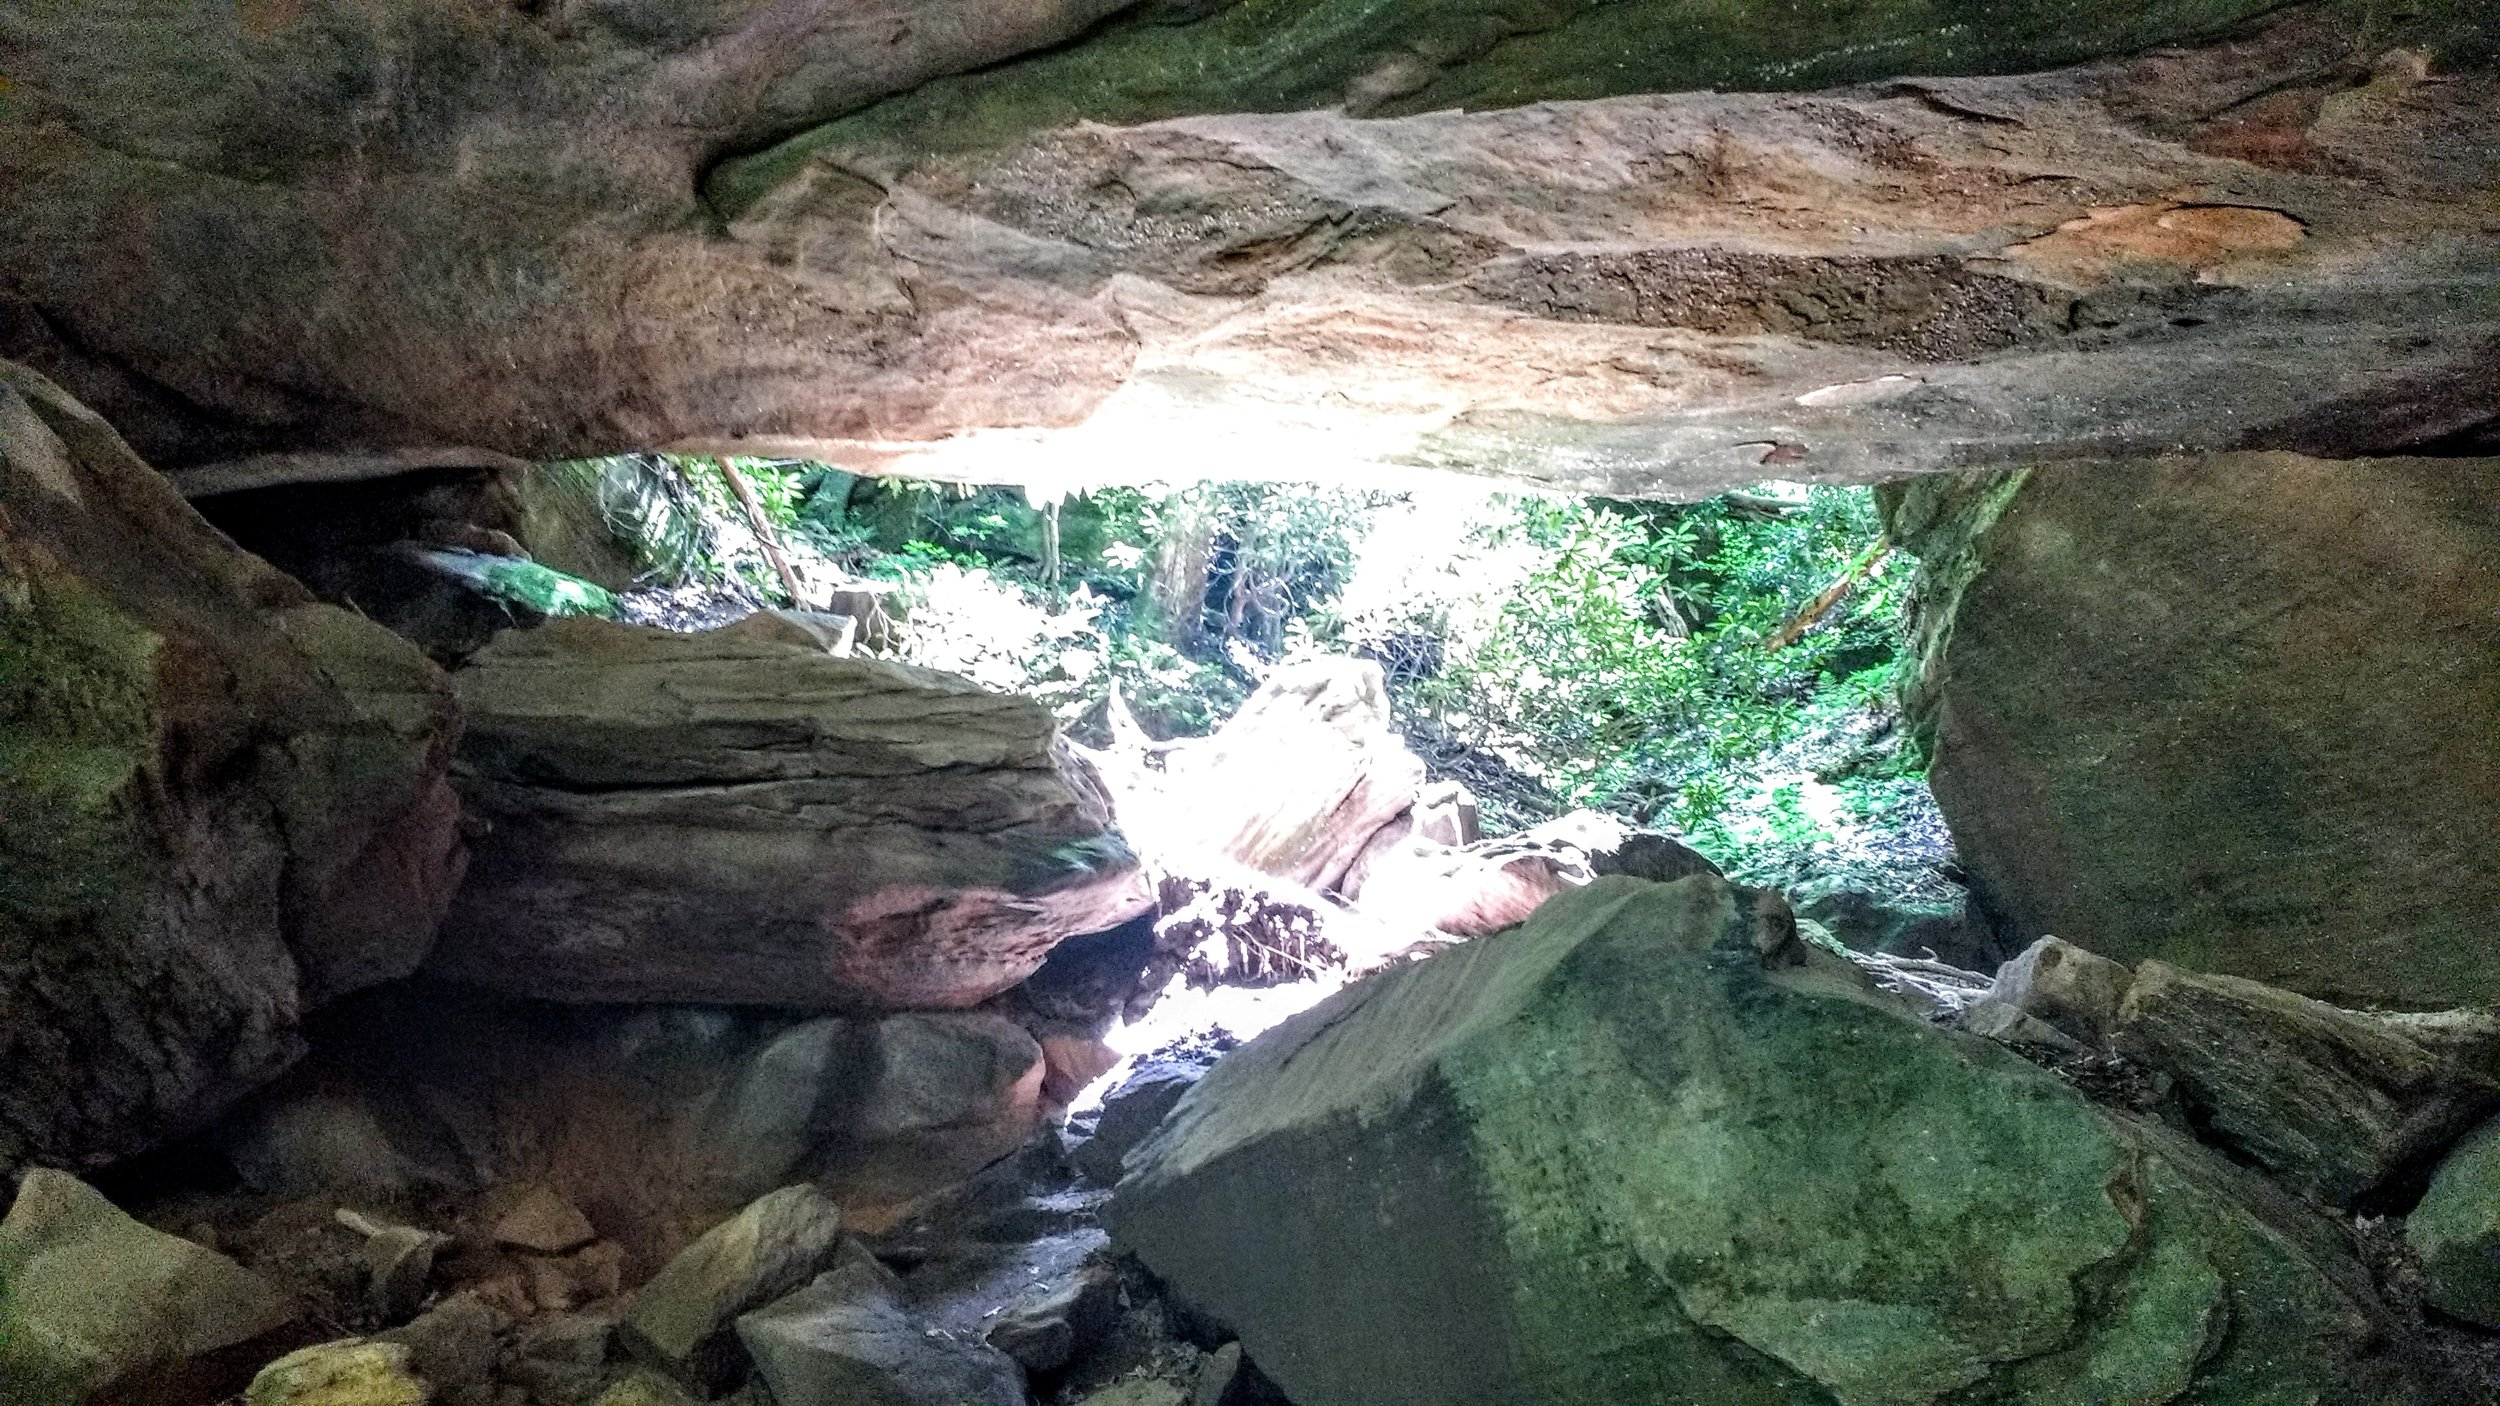 A view from inside Whittleton Arch in Daniel Boone National Forest